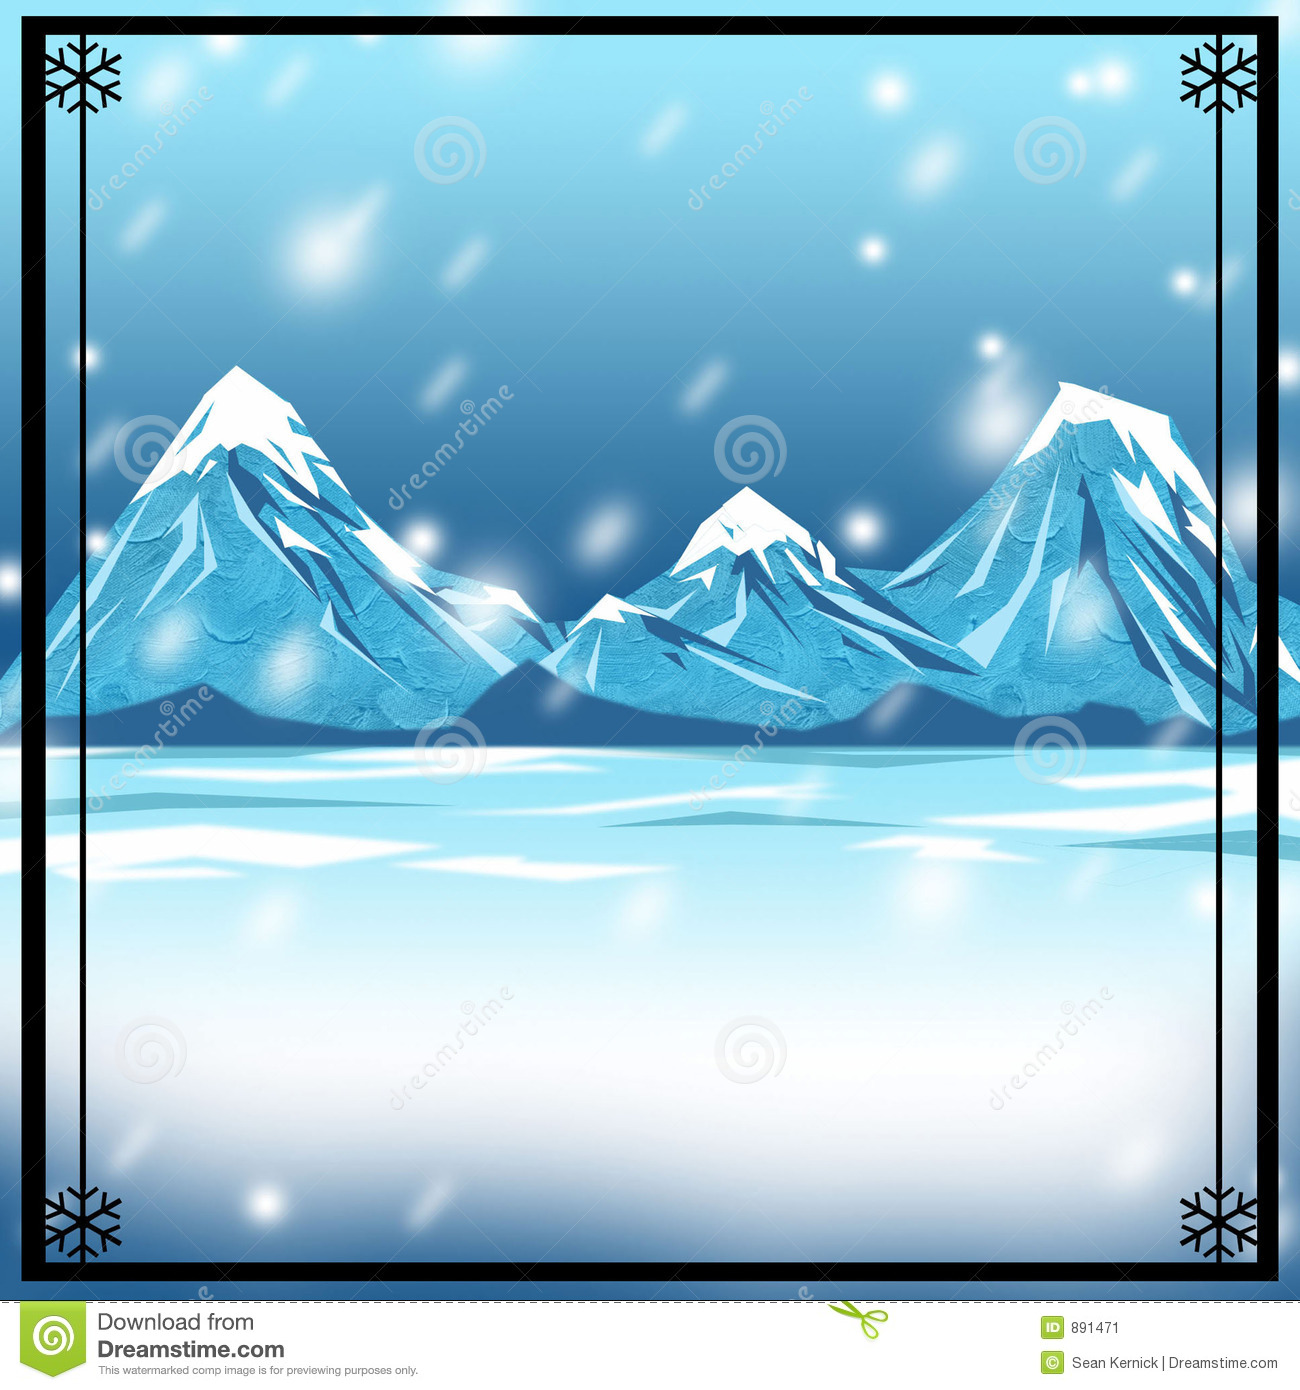 Snowy Winter Backdrop Background Stock Image   Image  891471